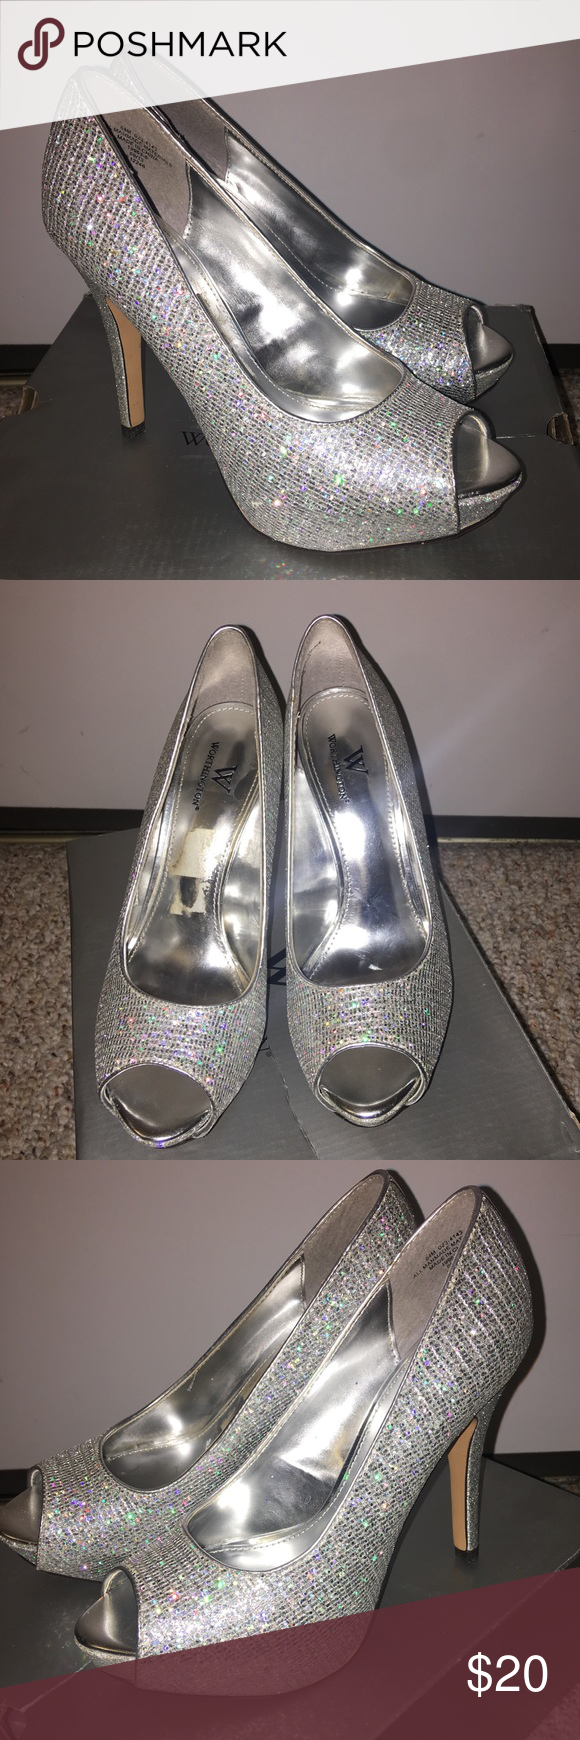 084381fdc93d Worthington Silver/sparkle heels Only worn once! Super cute Worthington  (Lara style)